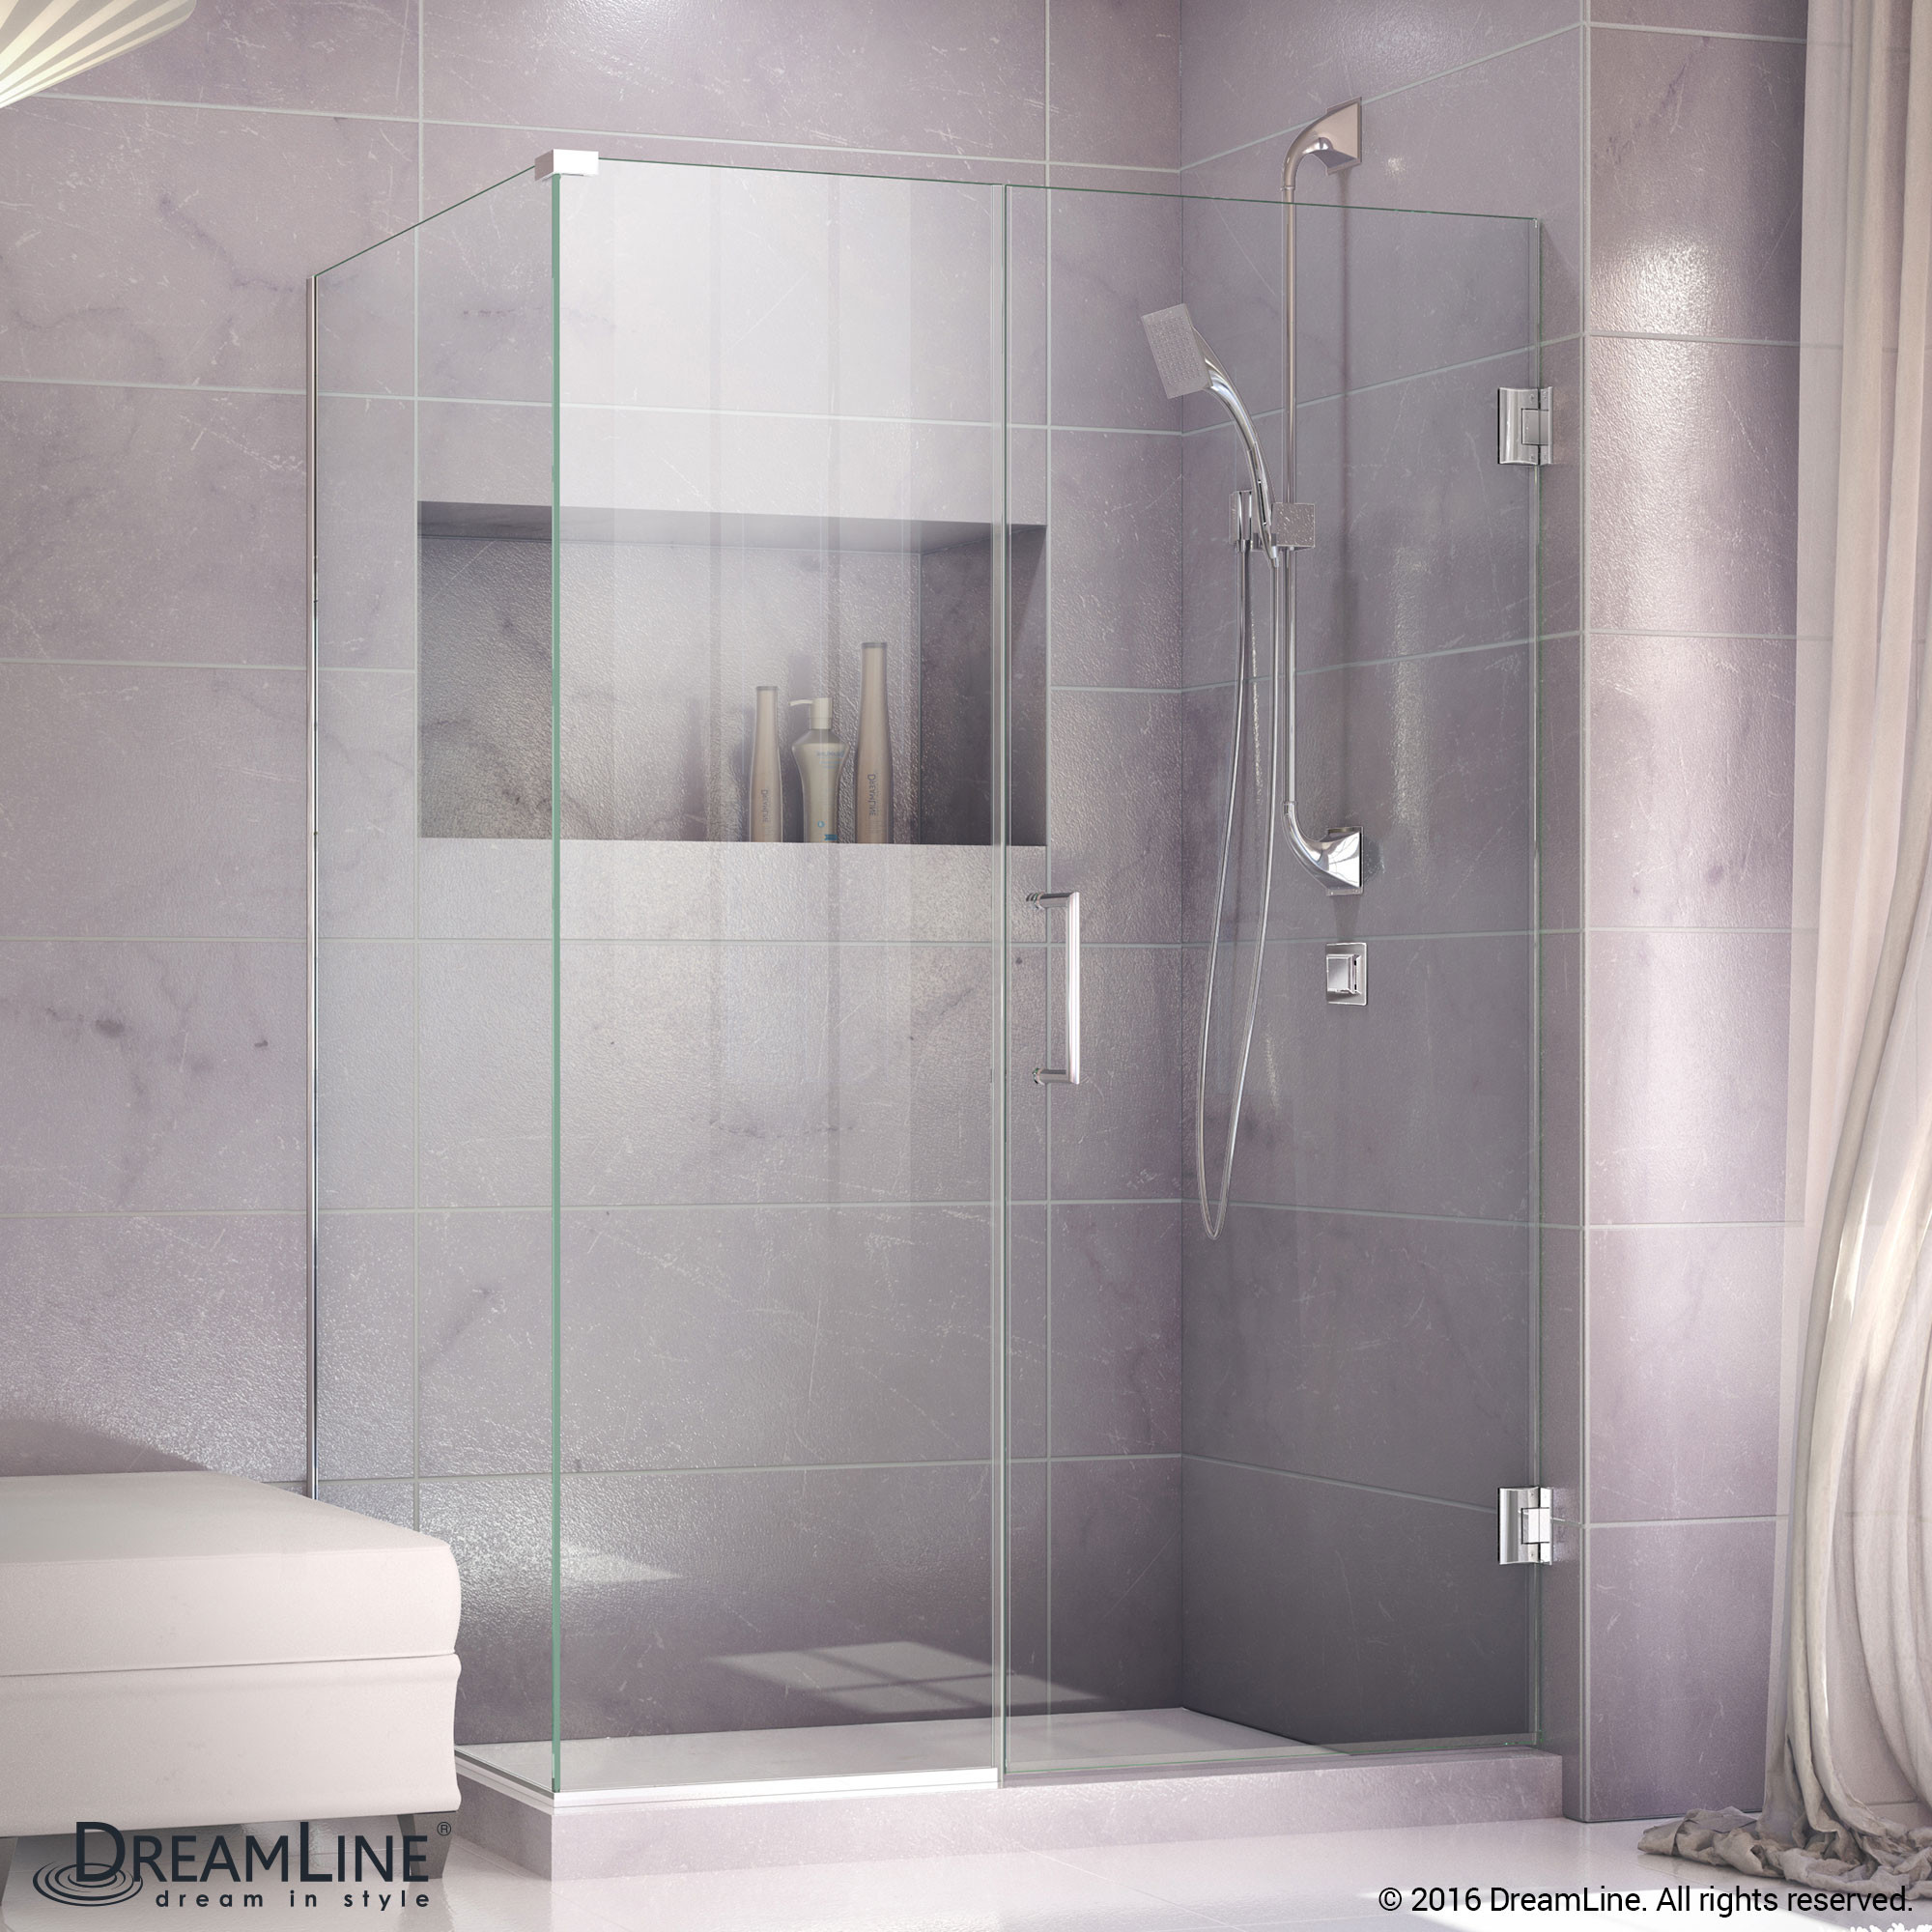 DreamLine SHEN-24550300-01 Unidoor Plus Hinged Shower Enclosure In Chrome Finish Hardware